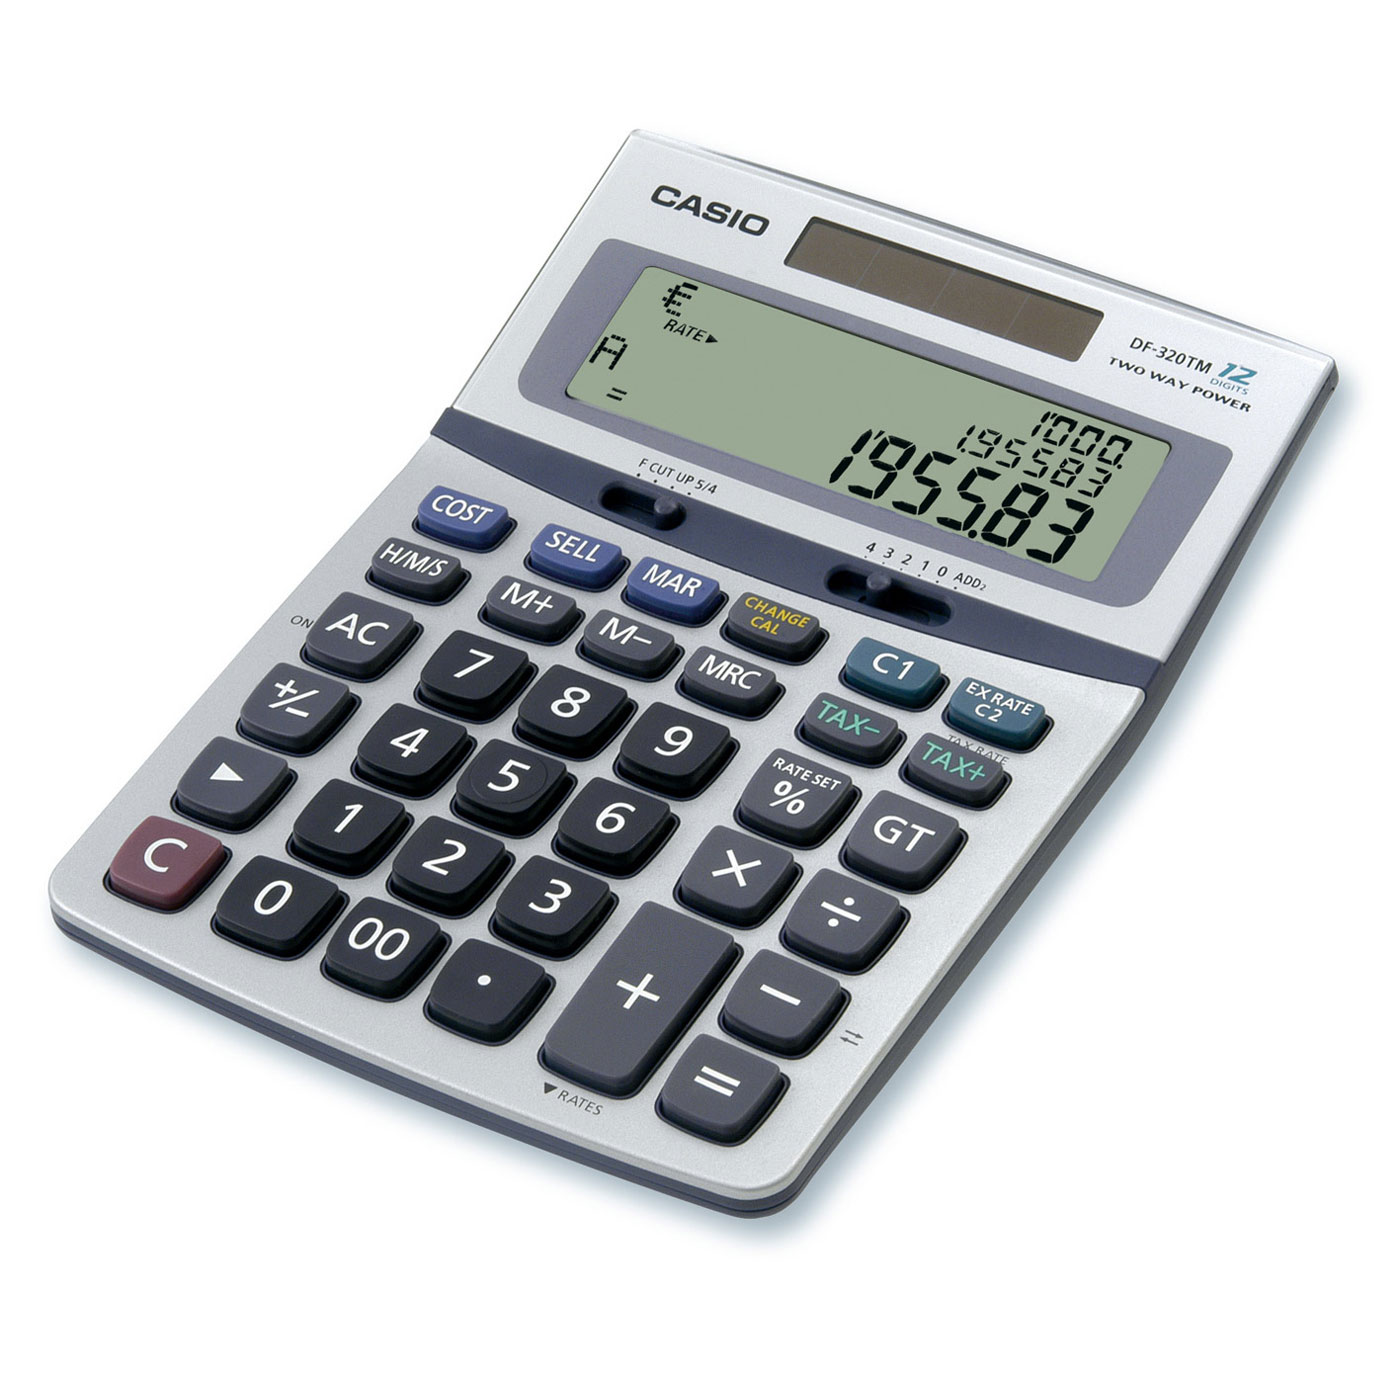 casio df 320tm calculatrice de bureau df 320tm achat vente calculatrice sur